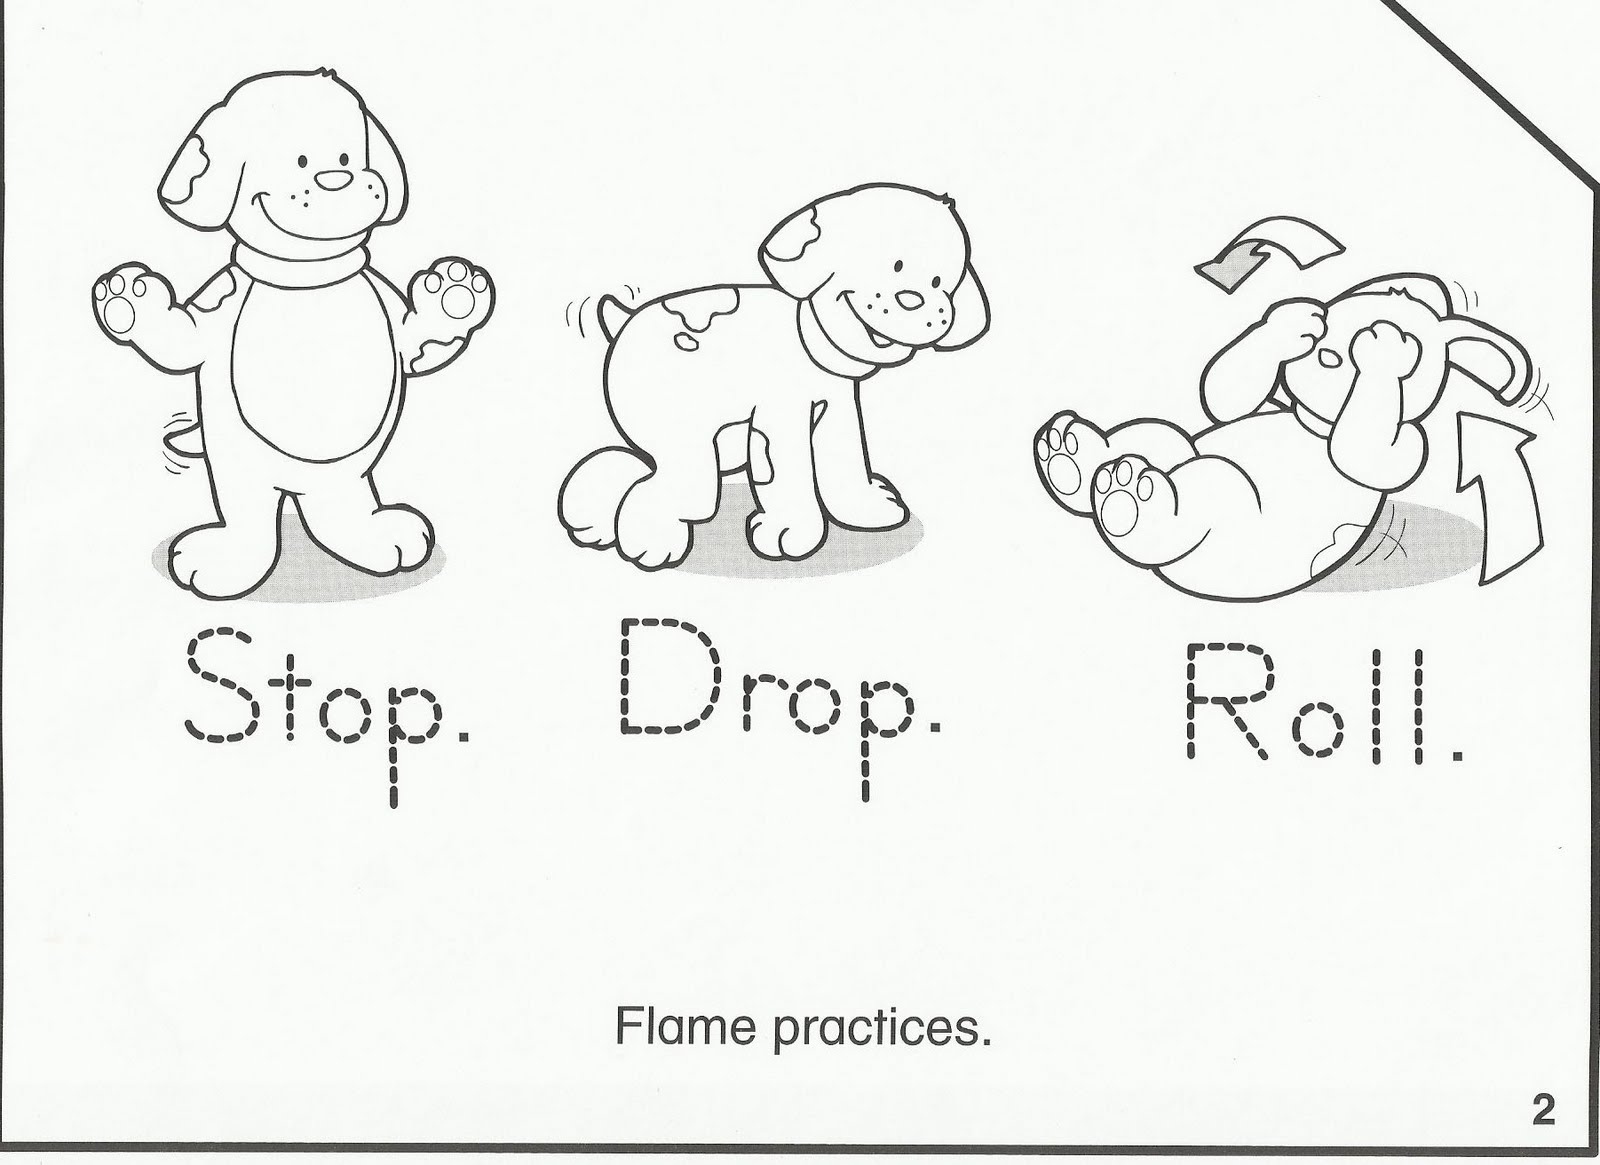 childrens fire safety coloring pages - photo#12